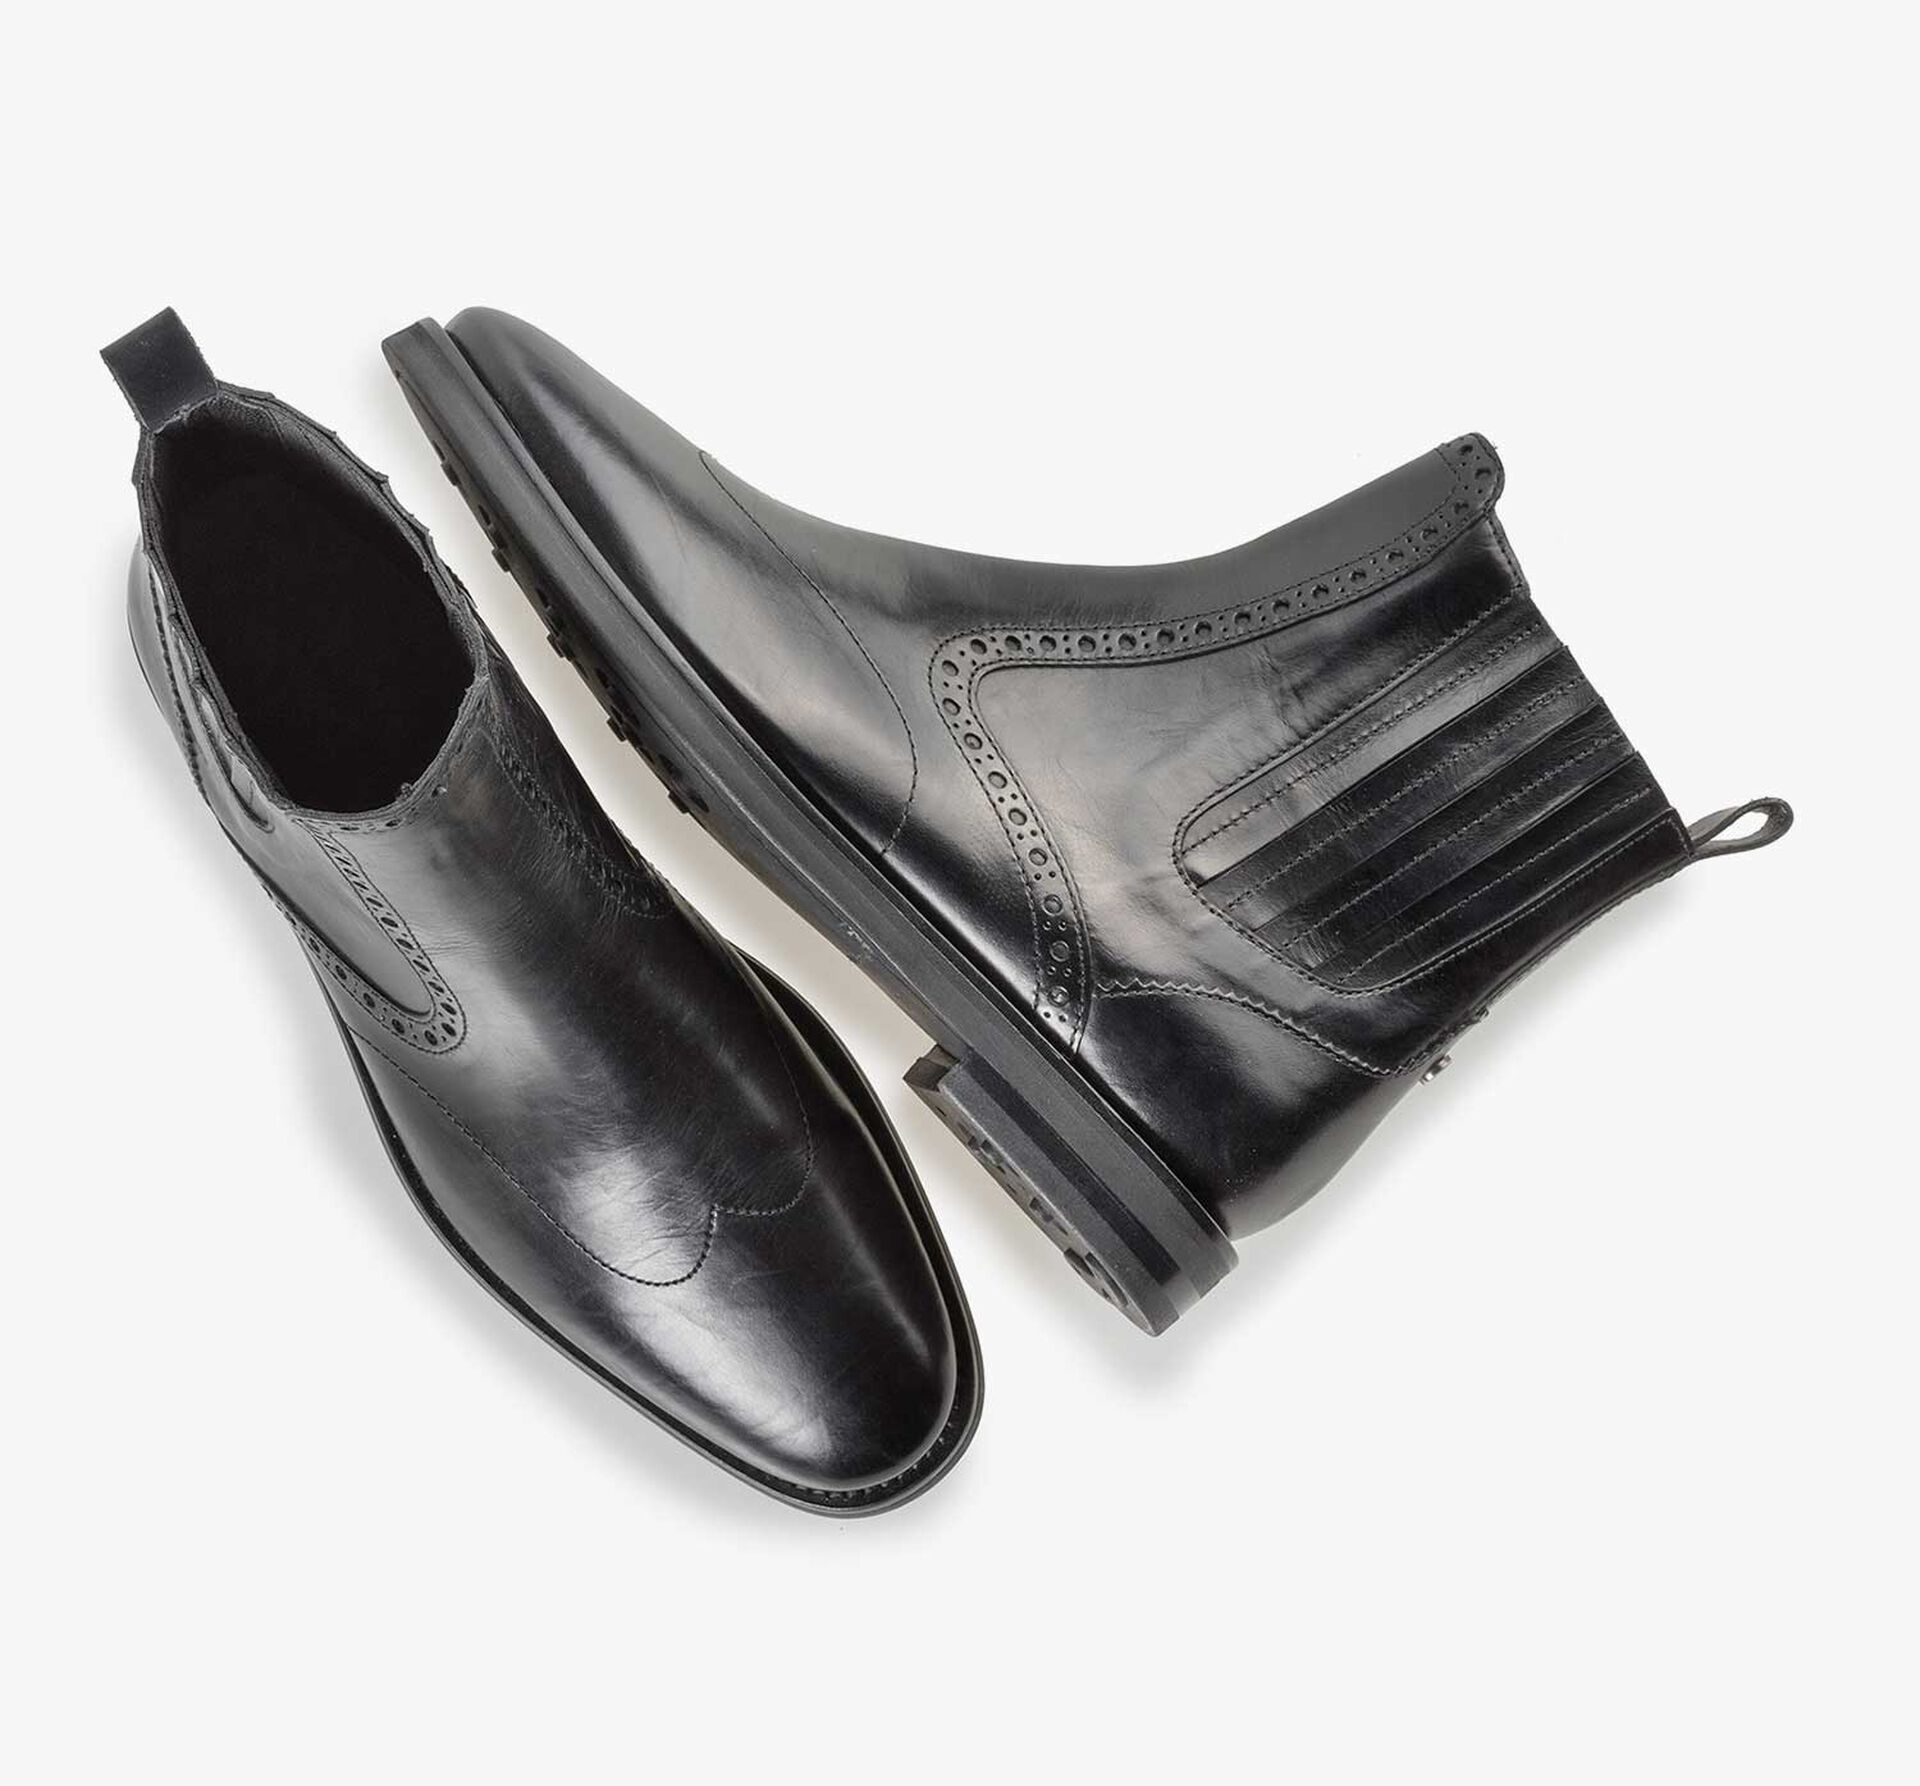 Black calf leather Chelsea boot with brogue details